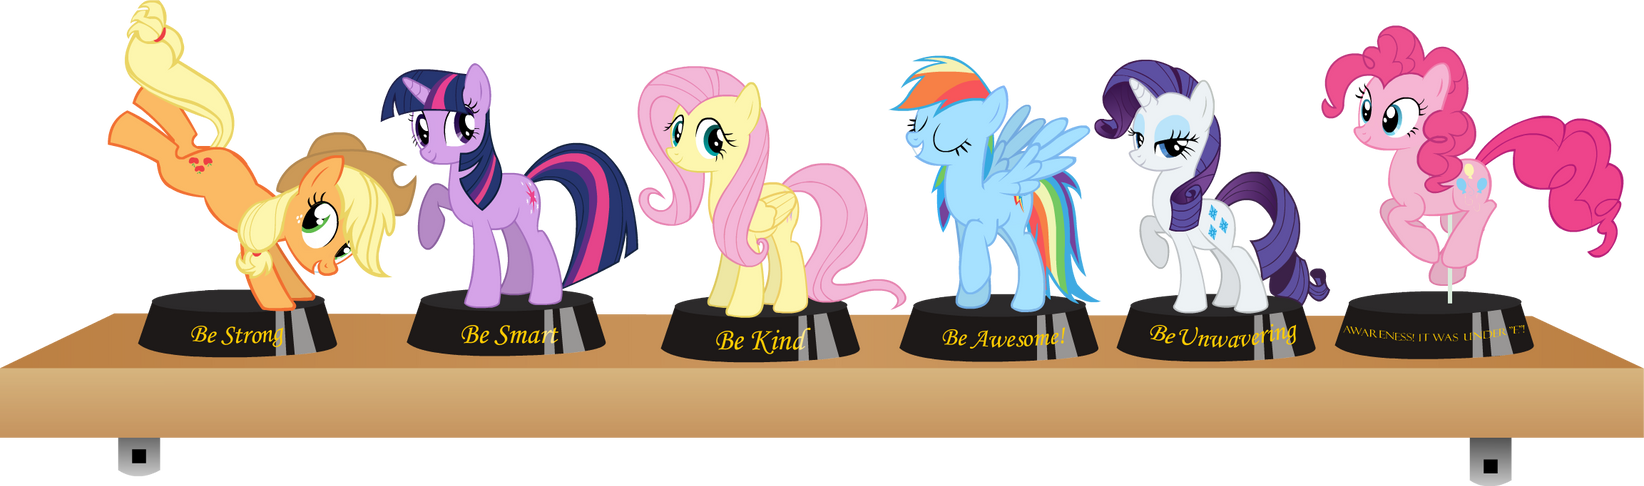 Fallout Equestria Statuettes by Thorwaldsen92